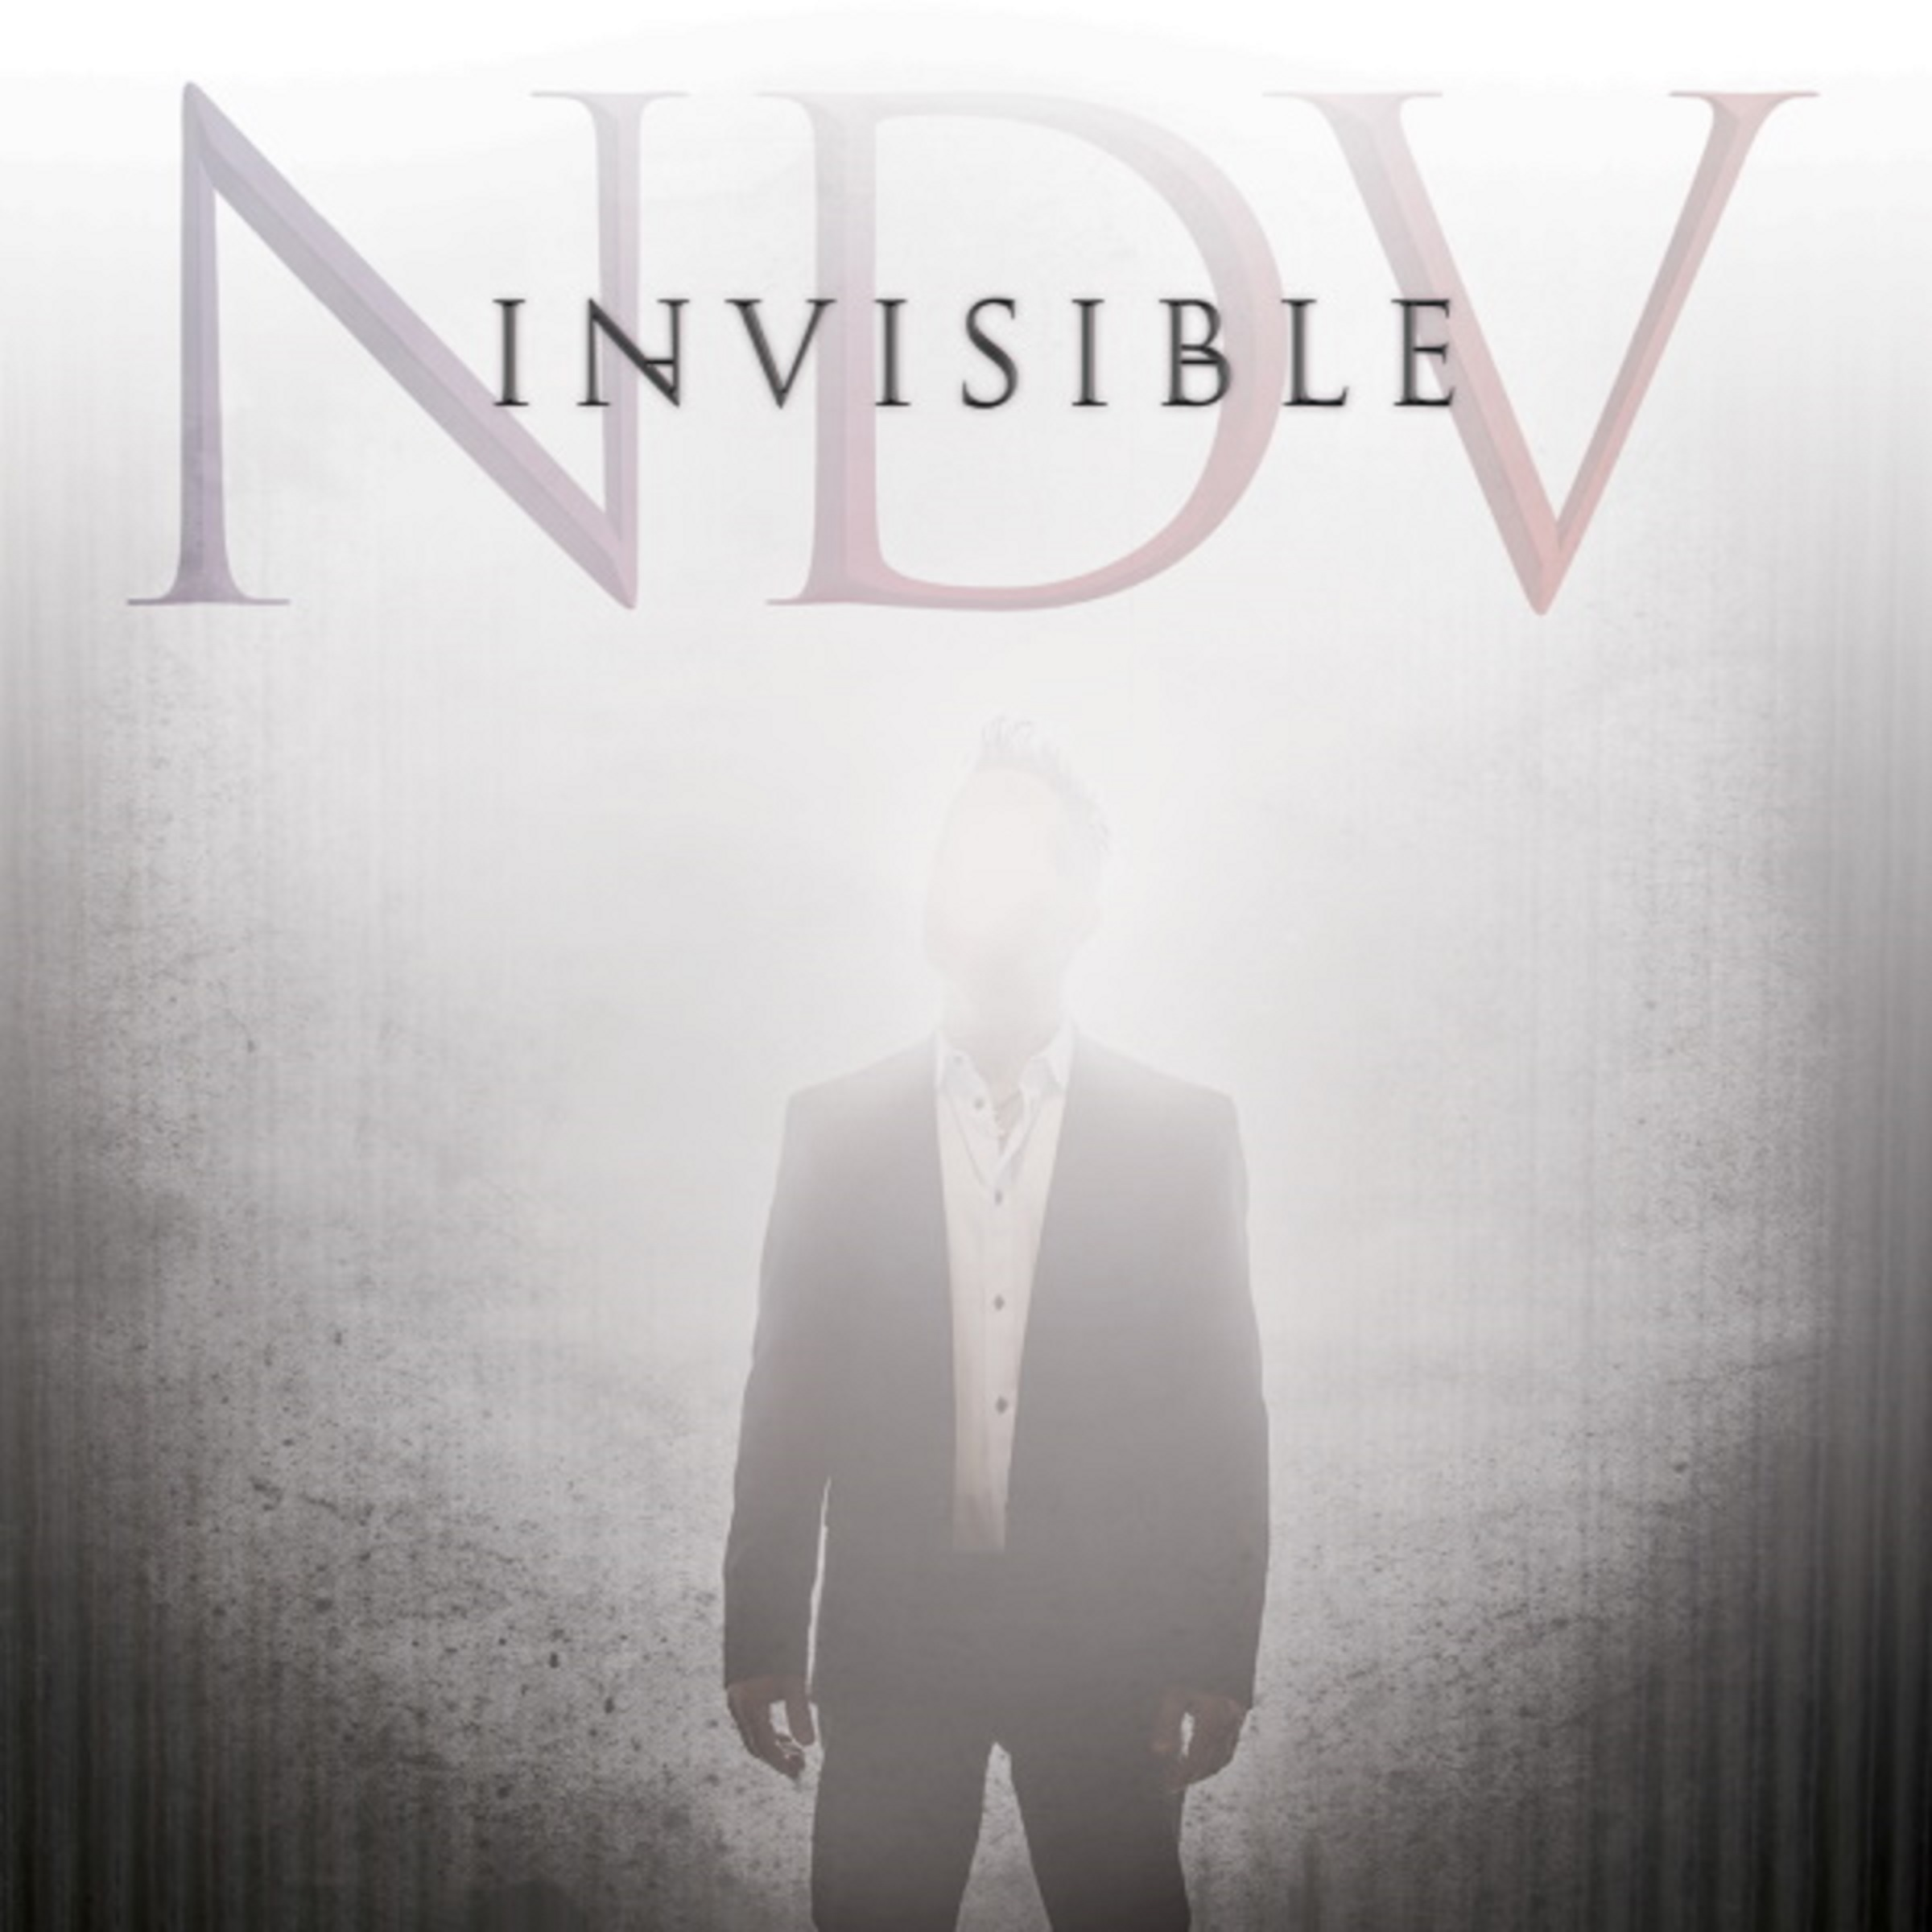 Nick D'Virgilio to Release New Solo Album 'Invisible' Featuring Members of Dream Theater, King Crimson, Supertramp, Cheap Trick, The Flower Kings & Others!